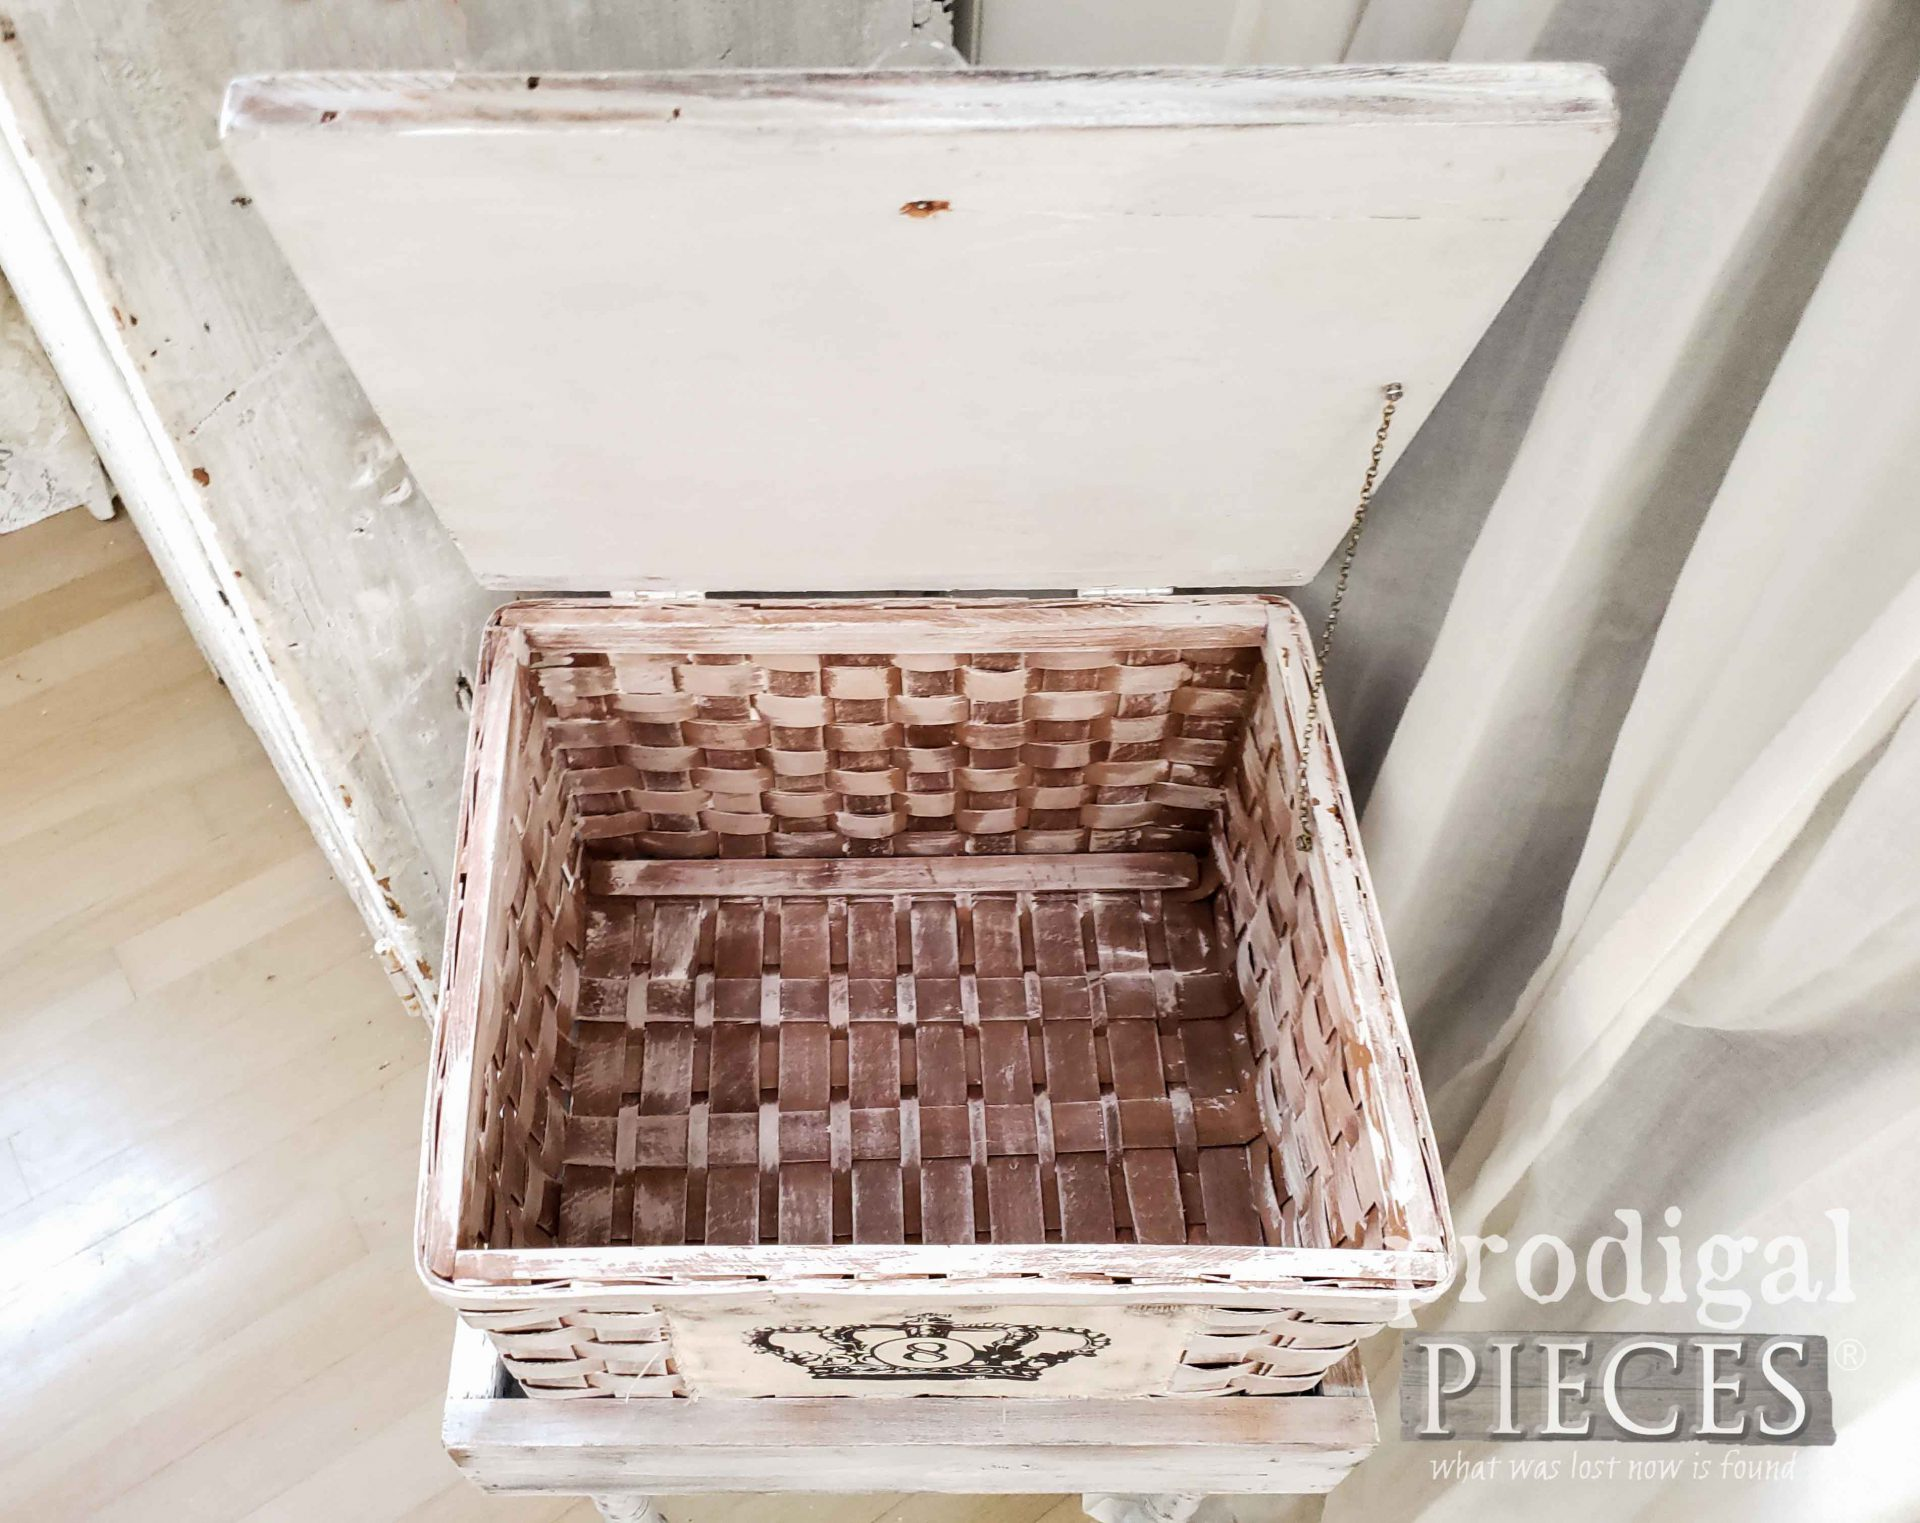 Inside Upcycled Basket Table with Storage by Larissa of Prodigal Pieces | prodigalpieces.com #prodigalpieces #furniture #handmade #home #homedecor